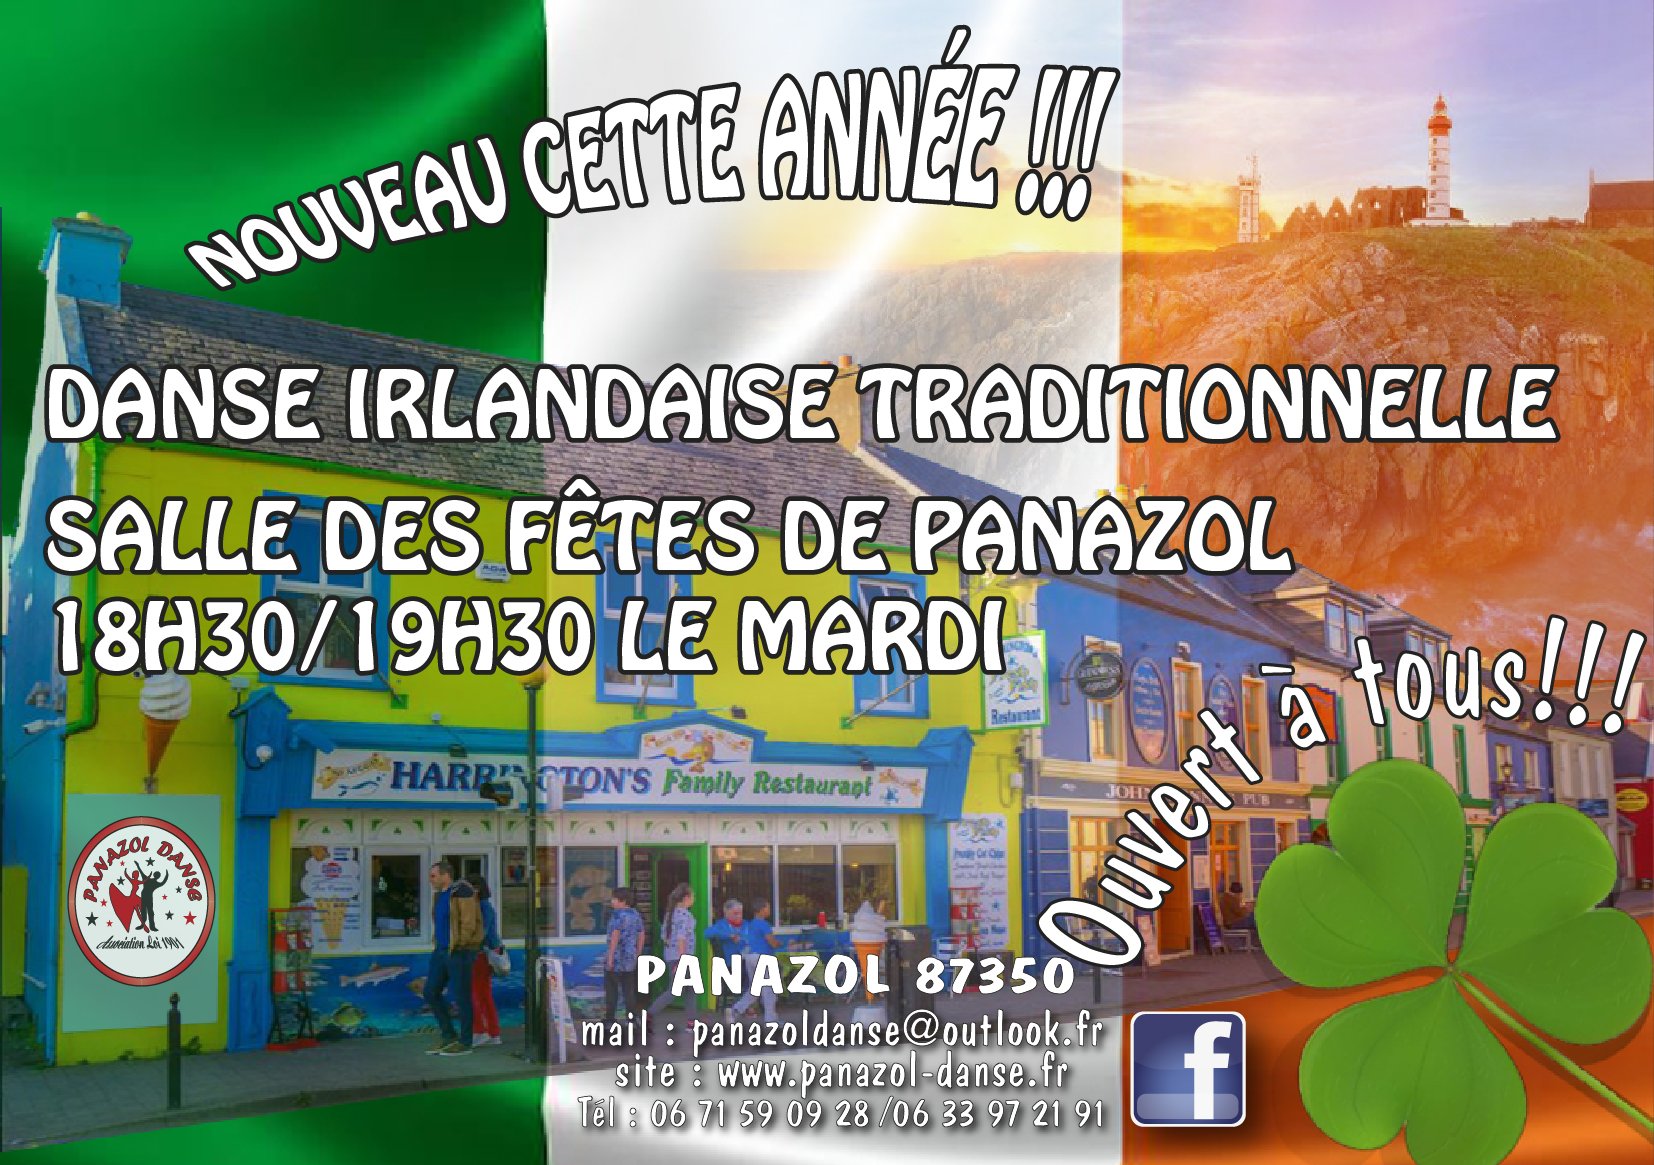 Cours de Danse Traditionnelle Irlandaise